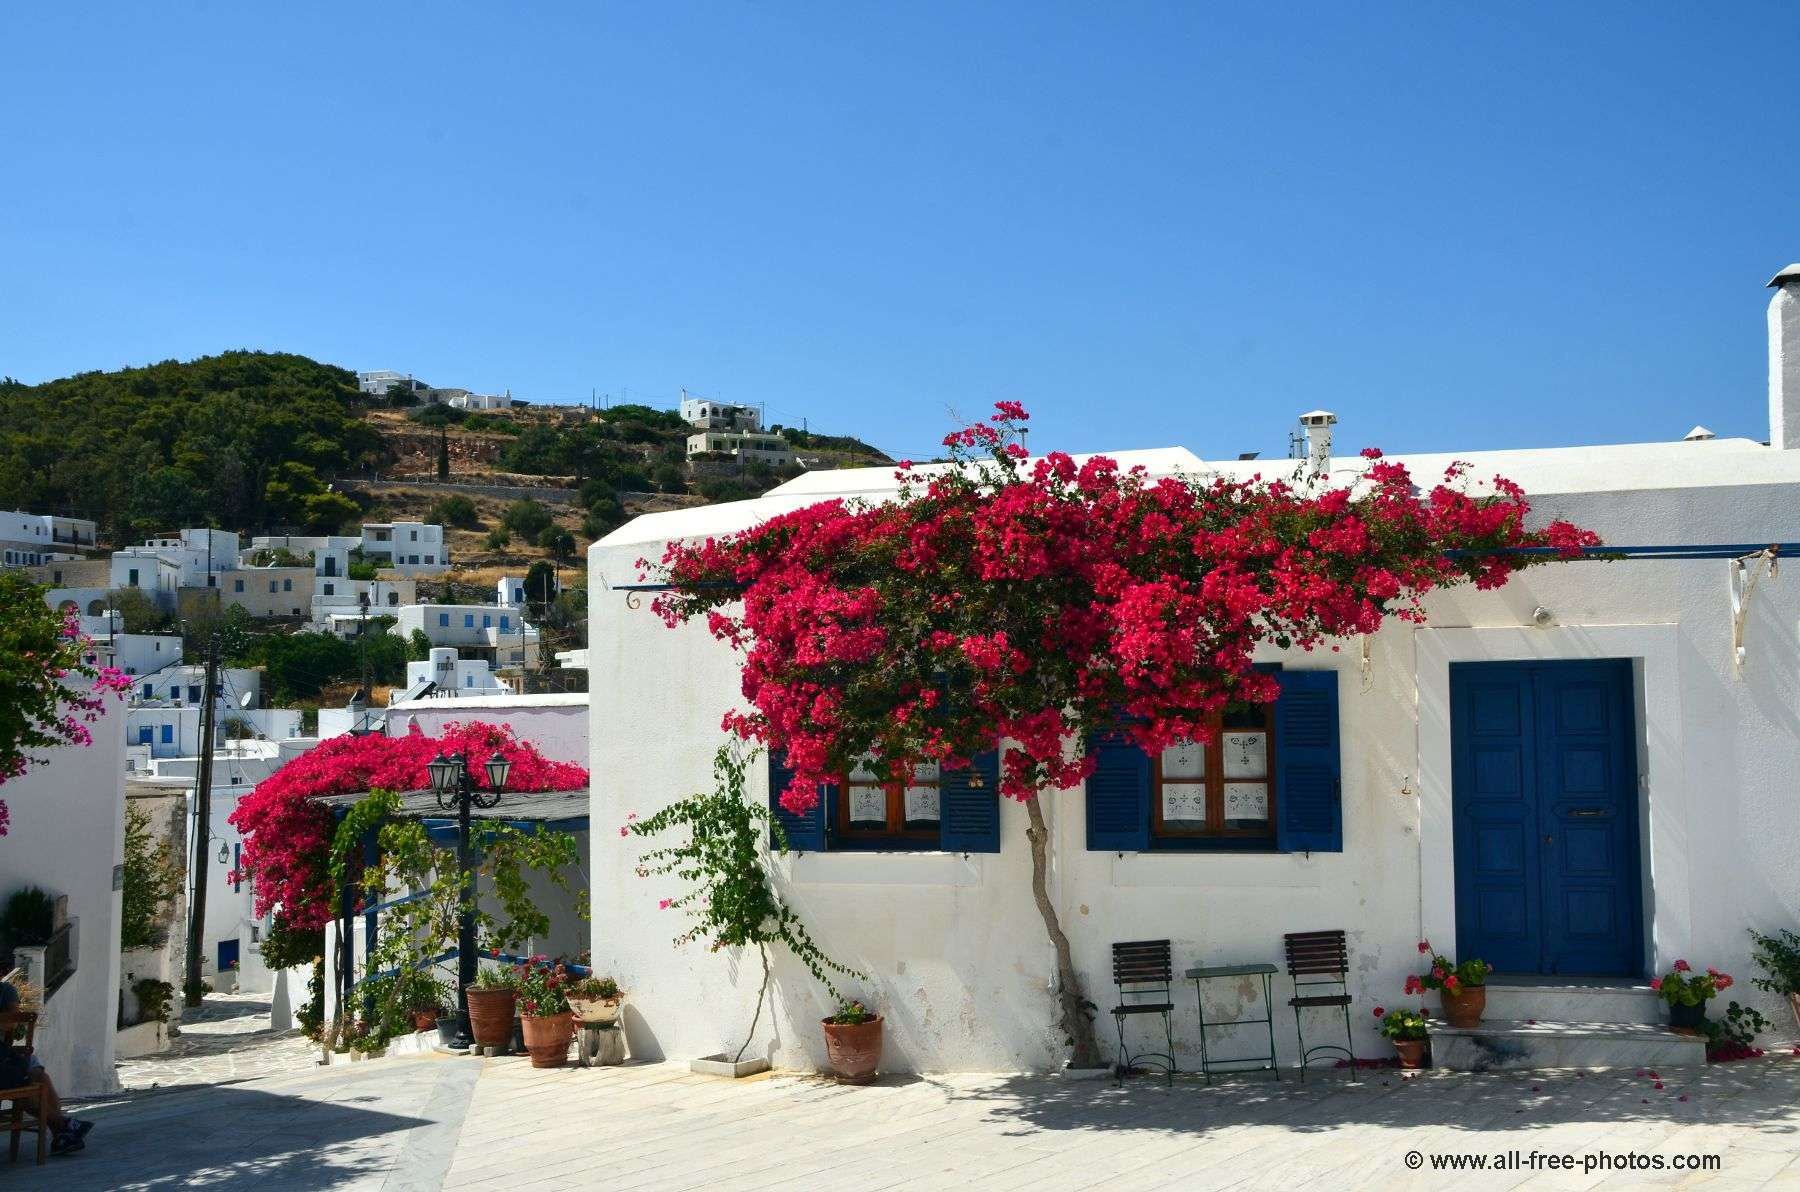 Home Galleries Towns and villages Greece Lefkes - Paros Island ...: www.all-free-photos.com/show/showphoto.php?idph=PI73395&lang=en